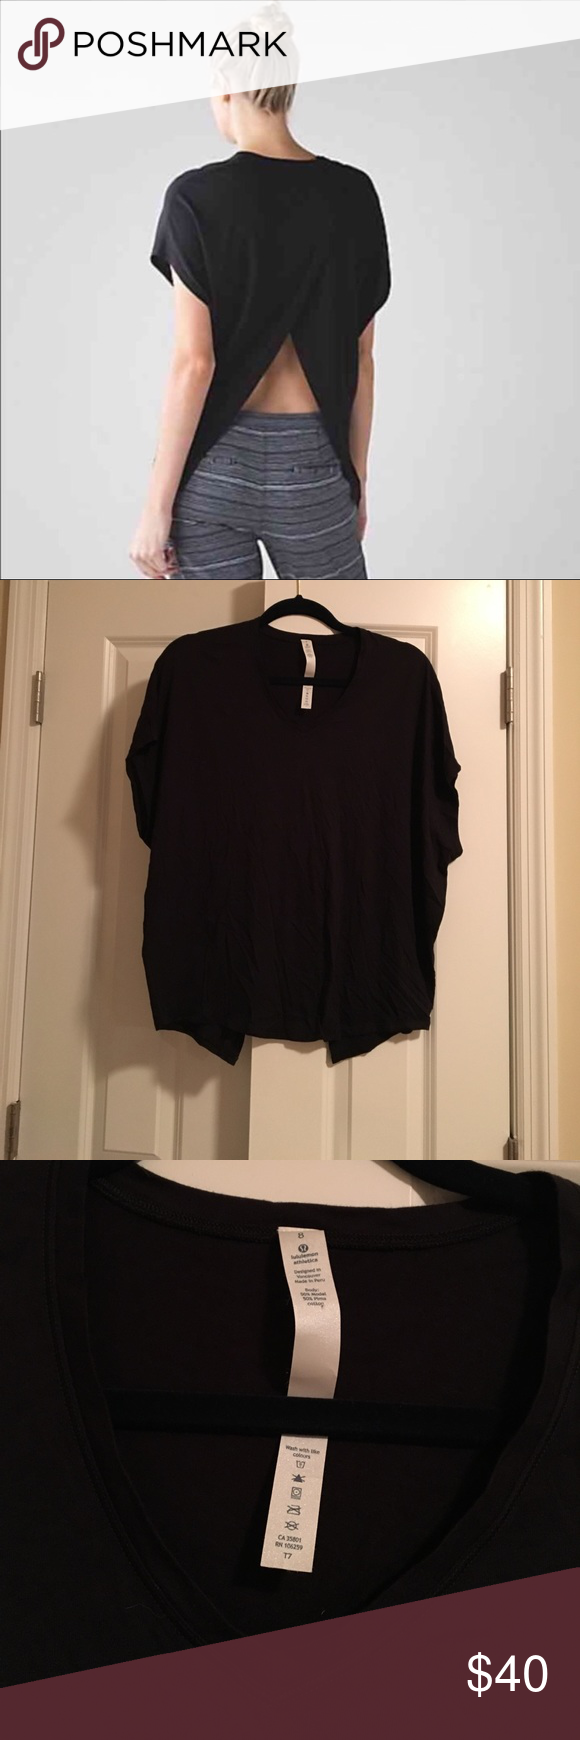 Lululemon devout split back tee black This tee was literally never worn! I removed the tag but it has never been worn or even washed. It's a pretty hard style to find in black! I ❤️ offers! lululemon athletica Tops